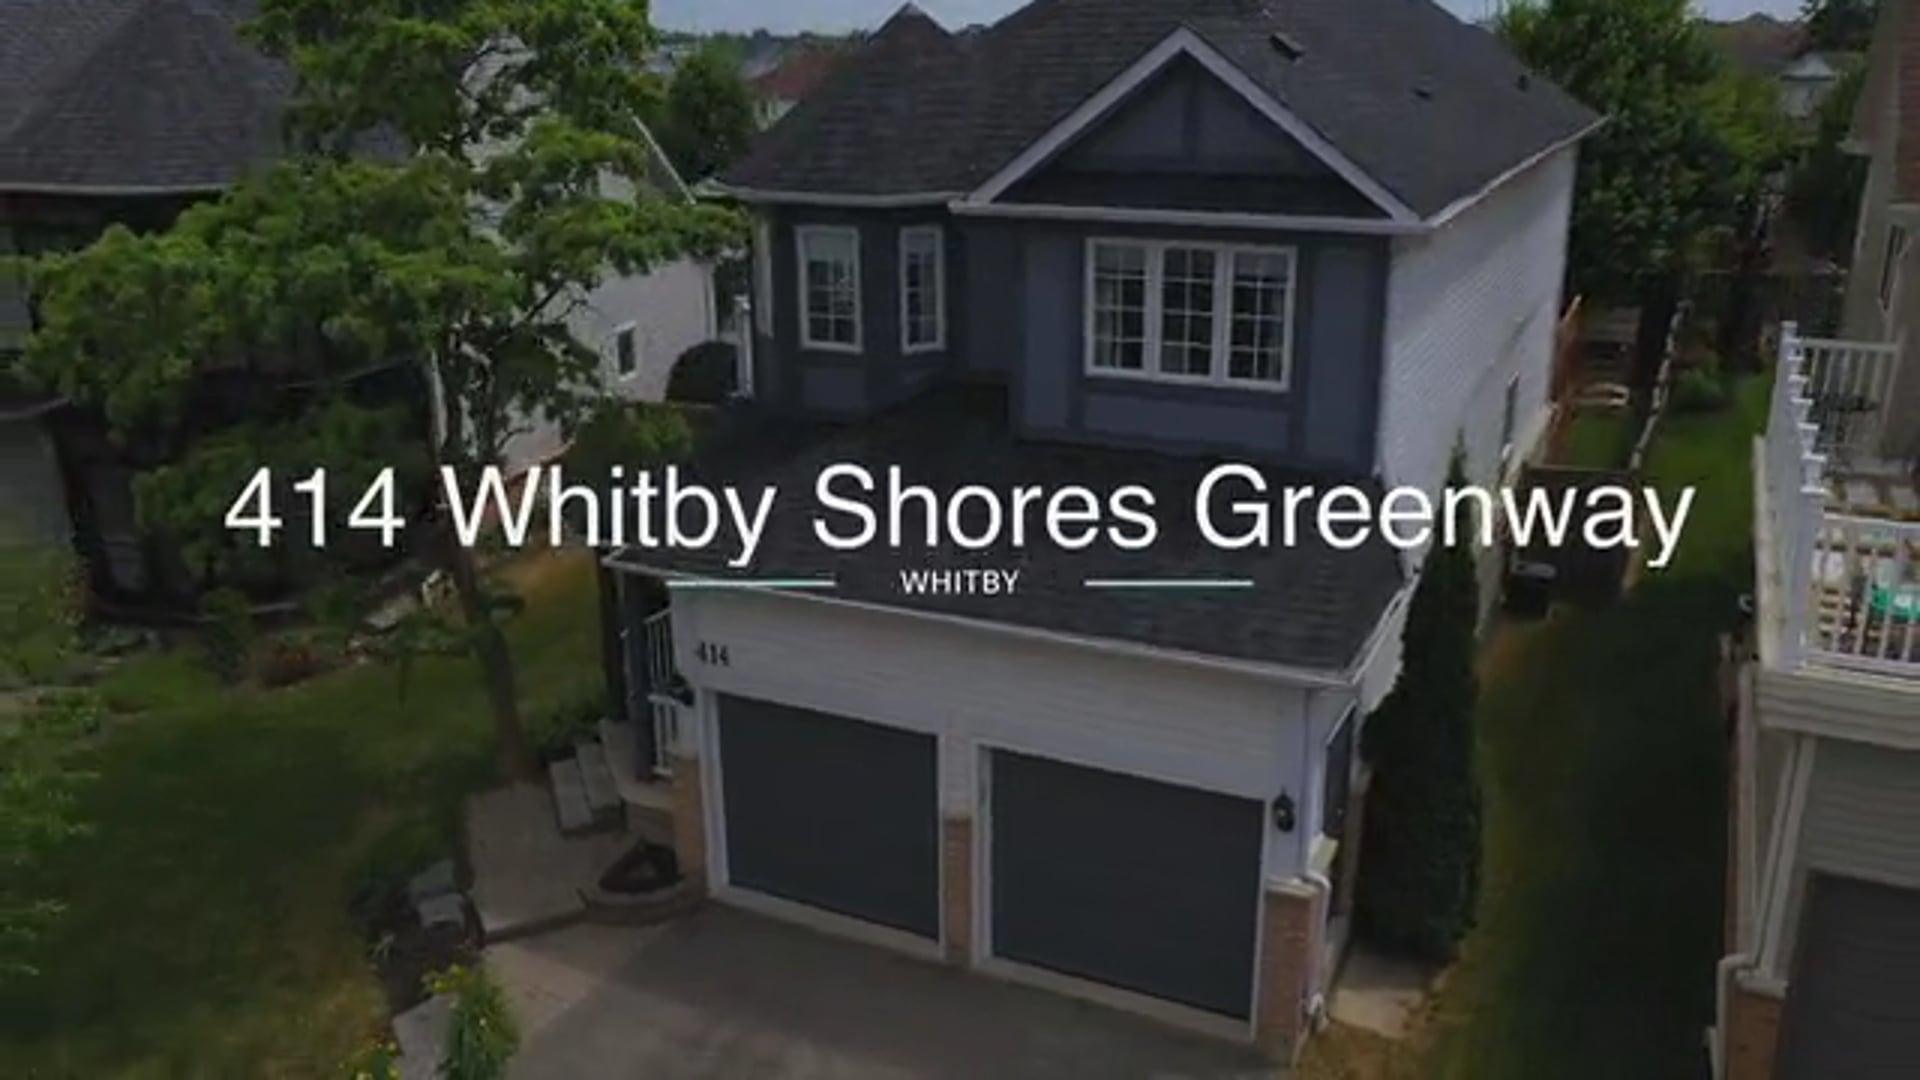 414 Whitby Shores Greenway